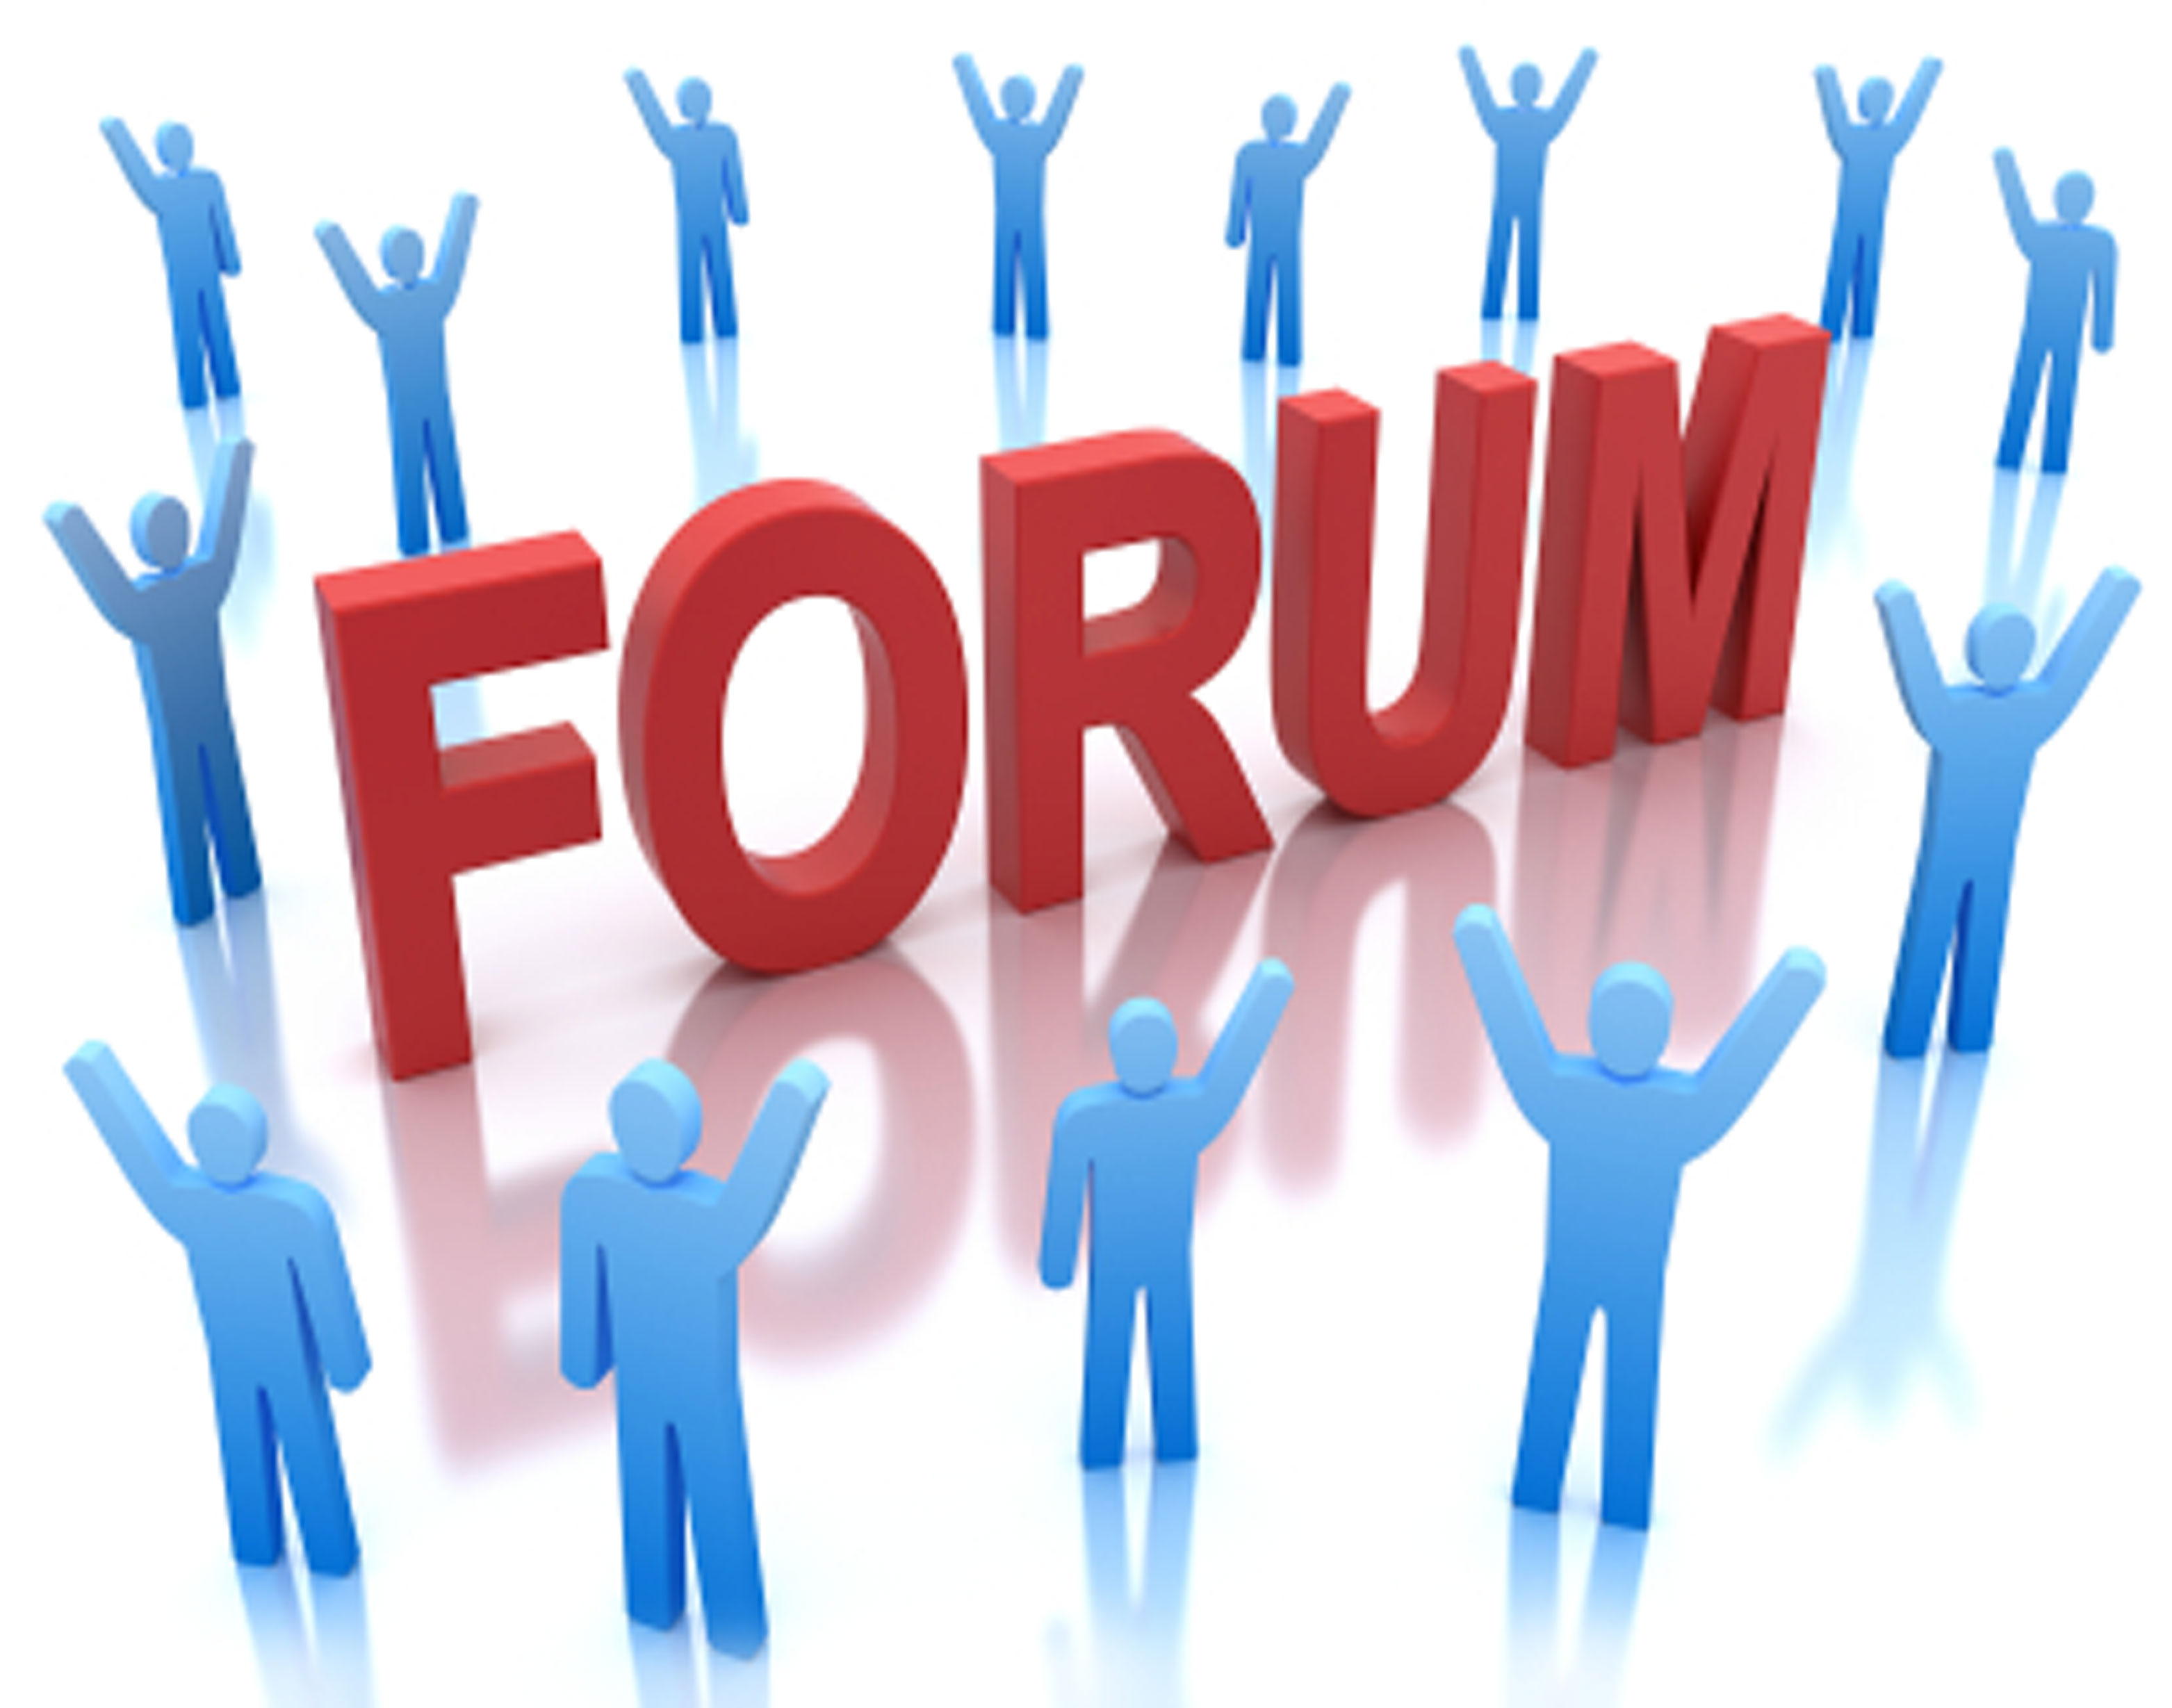 I can do 40 profile forum for your site